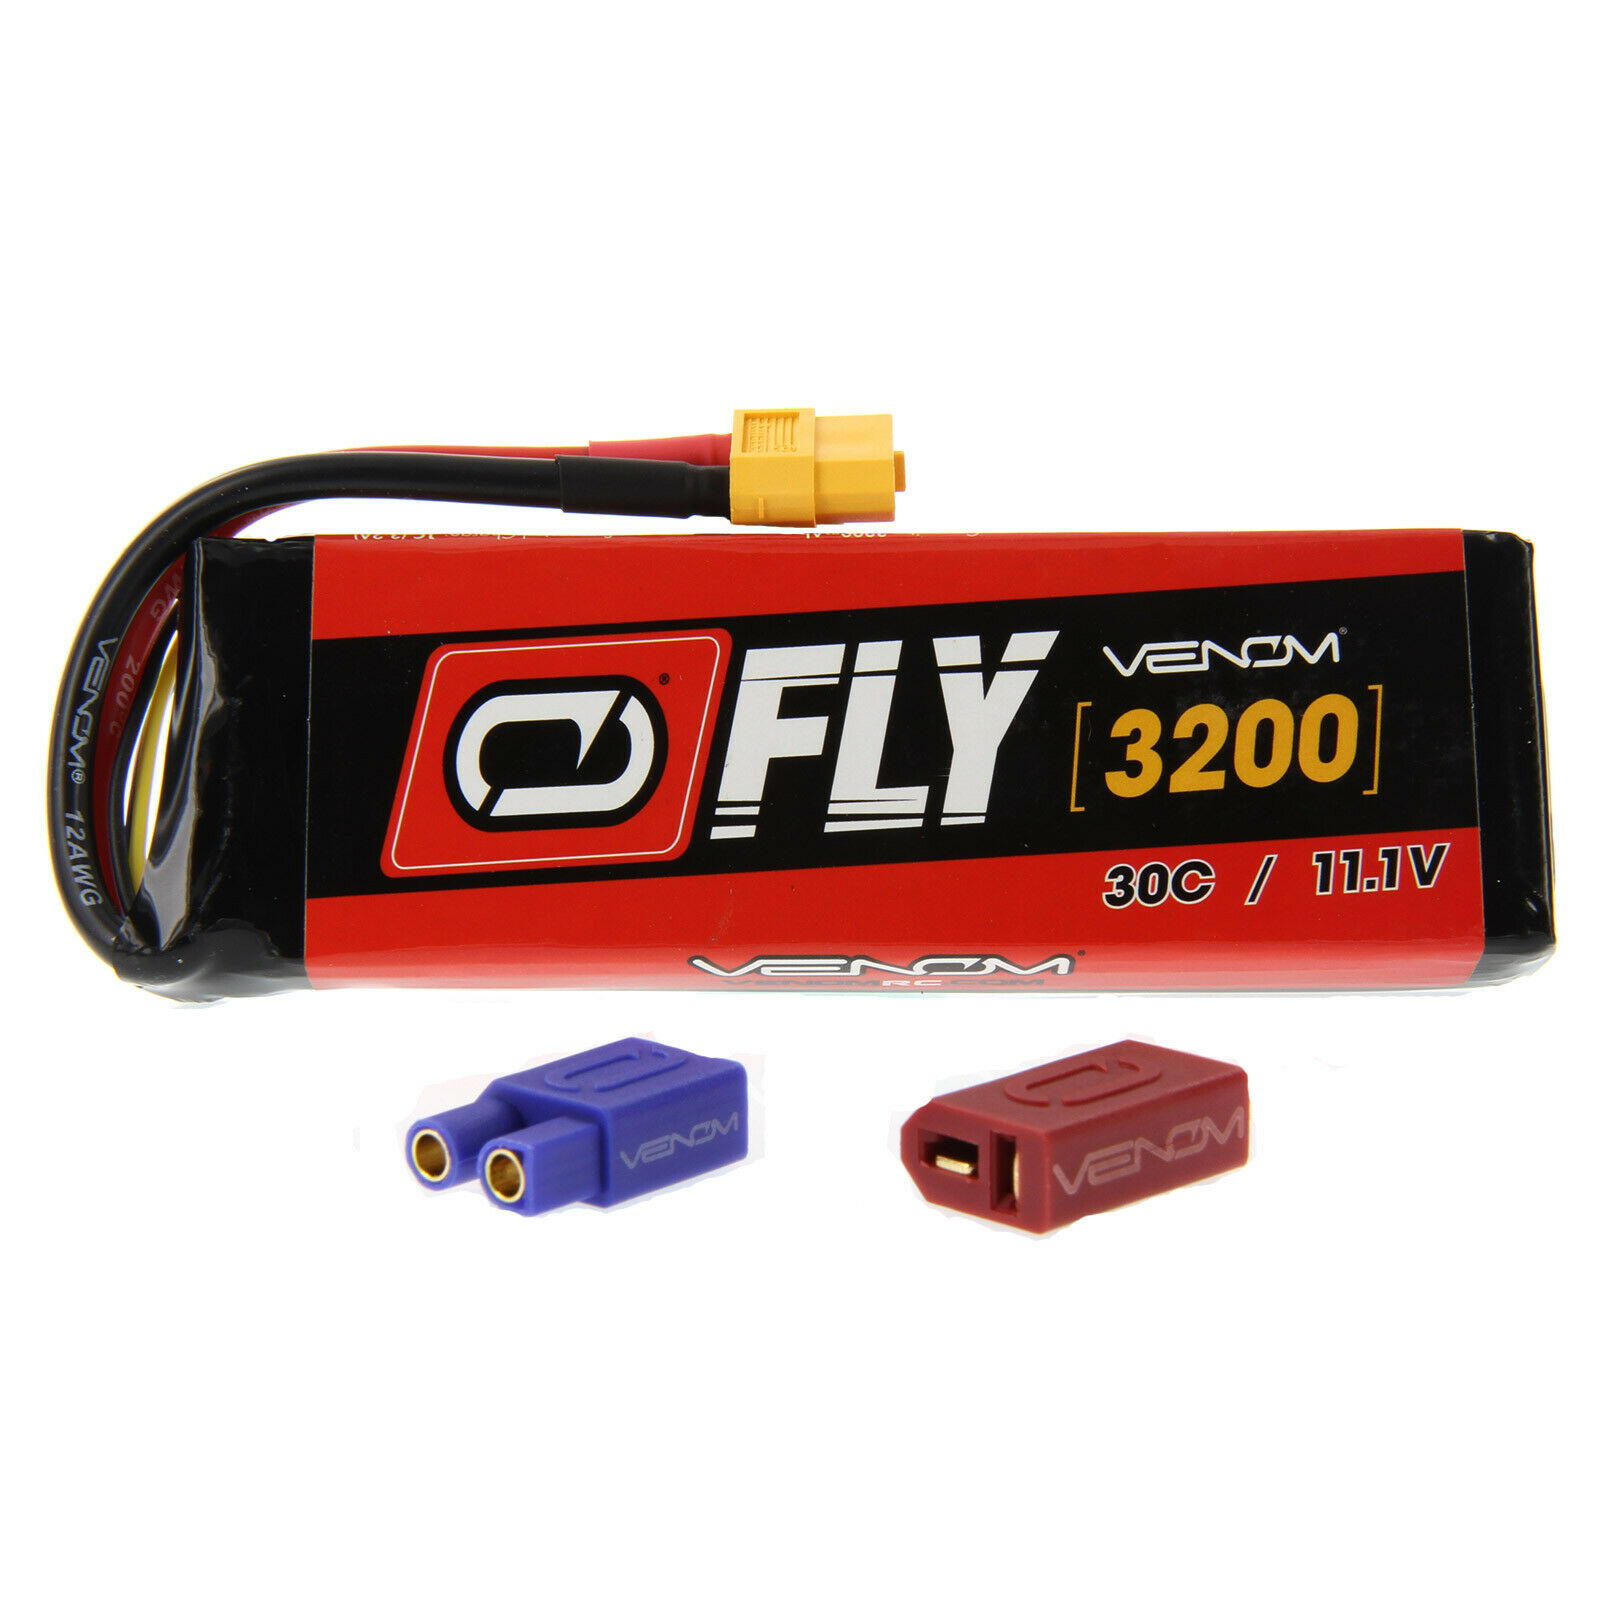 E-flite Pulse 15e 30C 3S  3200mAh 11.1V LiPo Battery with UNI 2.0 plug by Venom  economico e di alta qualità